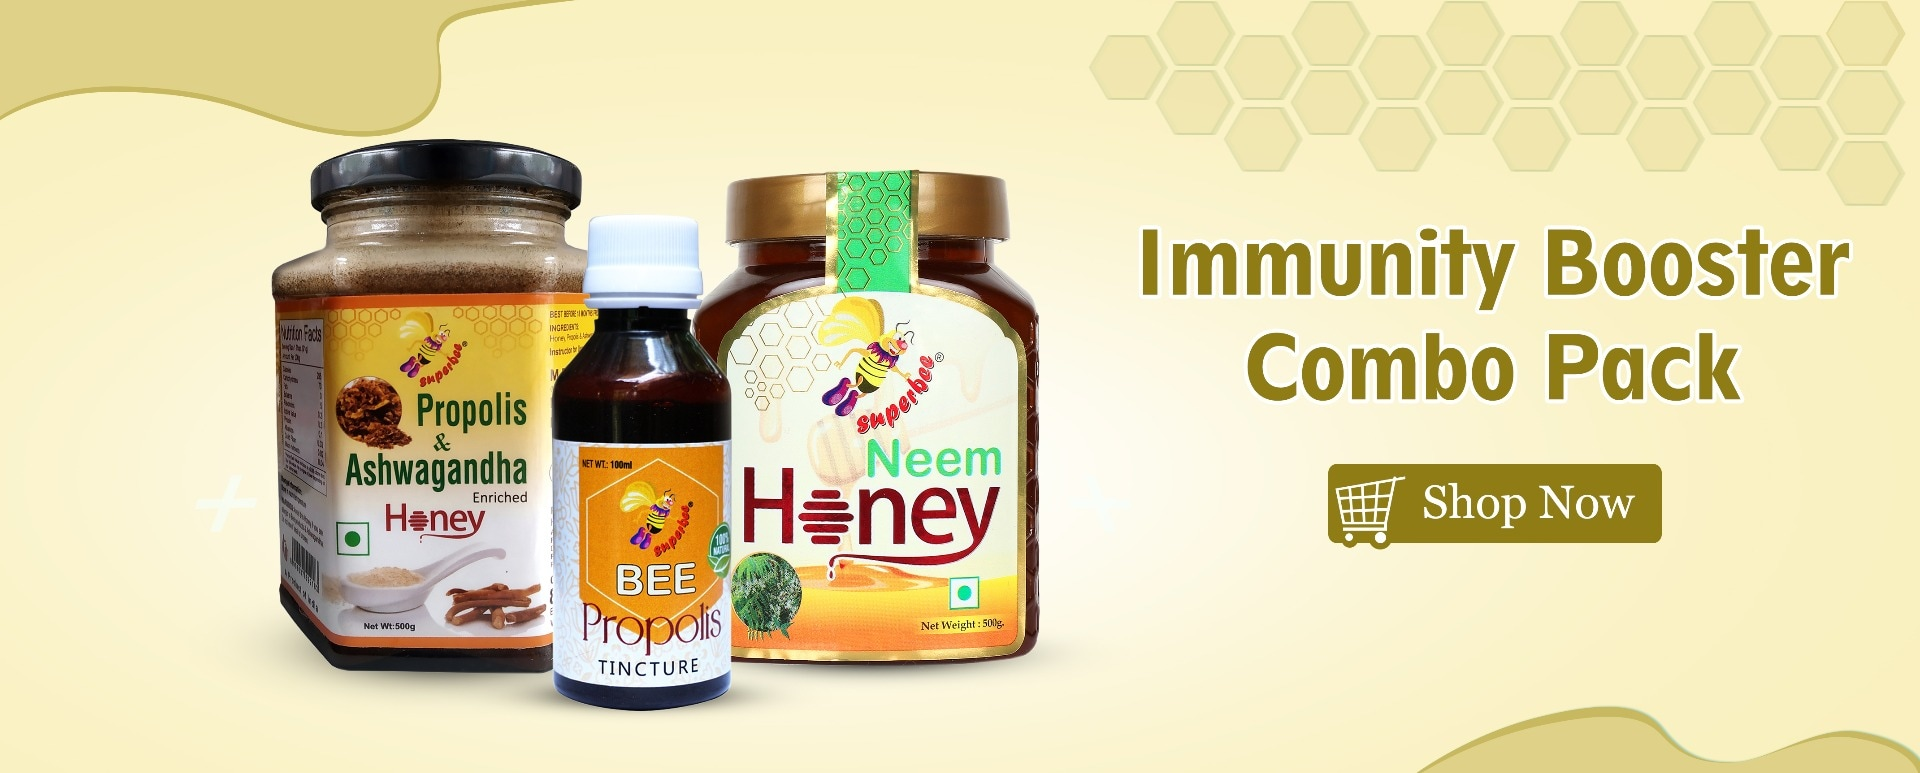 Hi-Tech Natural Products (India) Ltd. - Pure and Organic Honey Dealer in GTB Enclave, Dilshad Garden